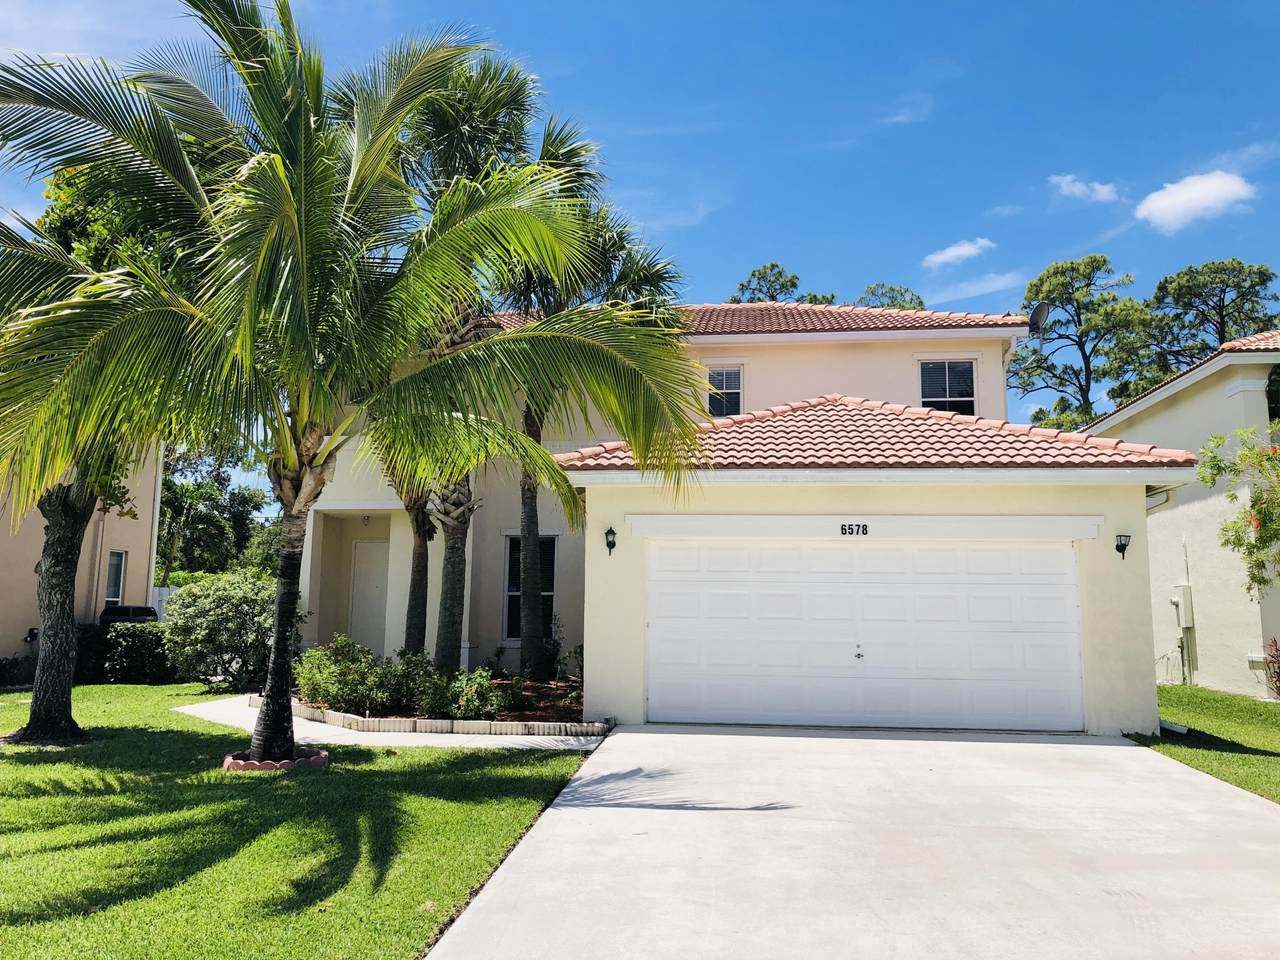 6578 Spring Meadow Drive - Photo 1